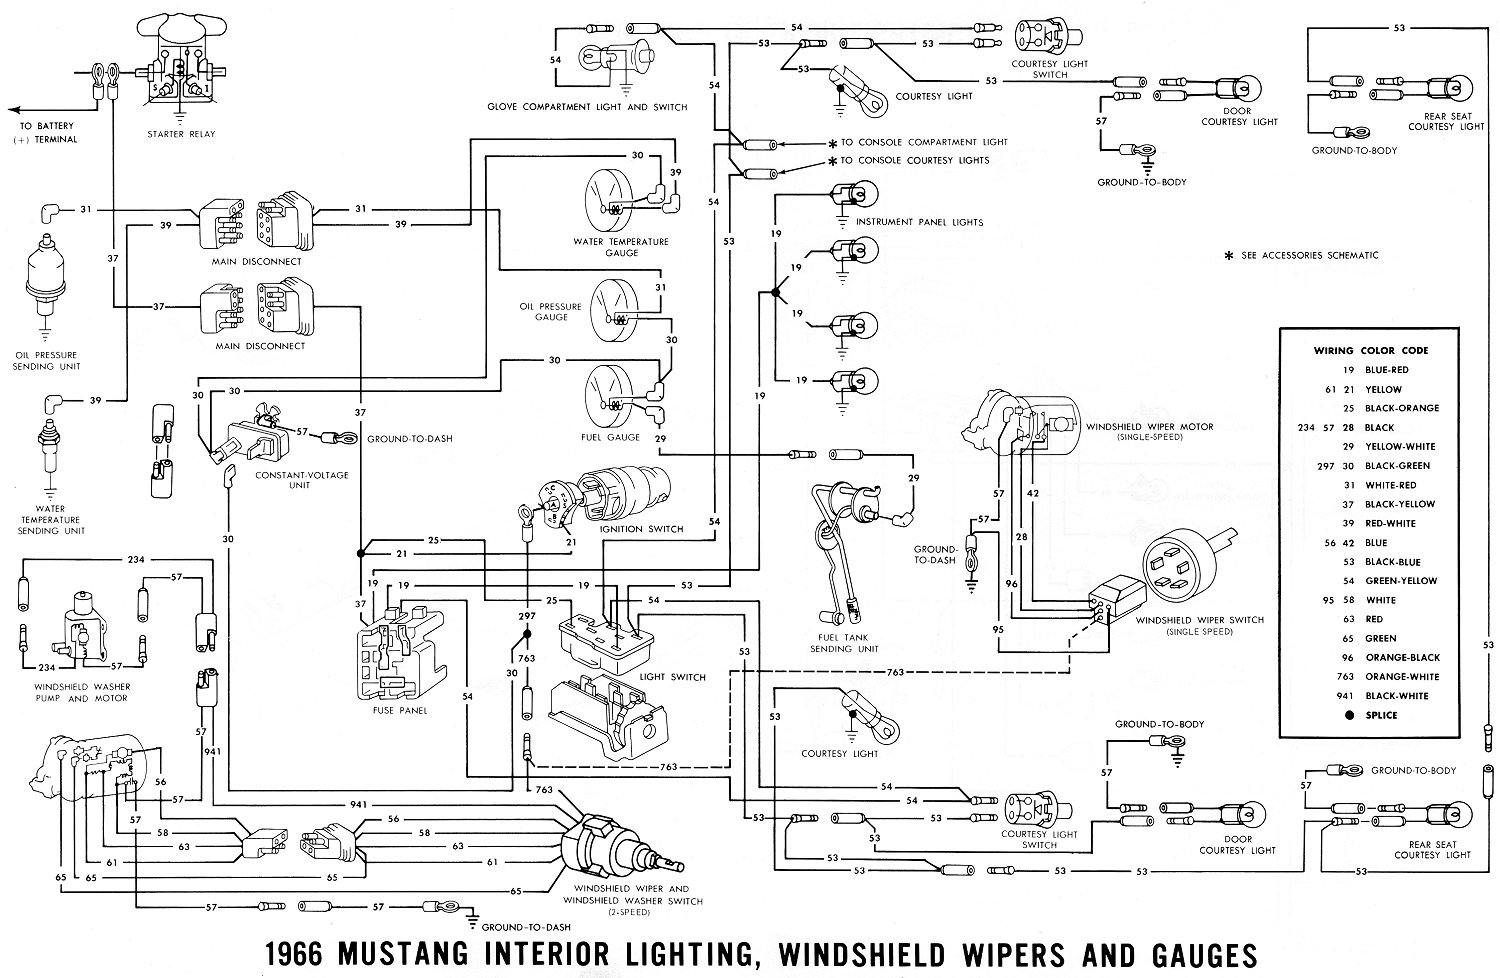 66inter1 1966 mustang wiring diagrams average joe restoration 66 mustang engine wiring diagram free at bayanpartner.co